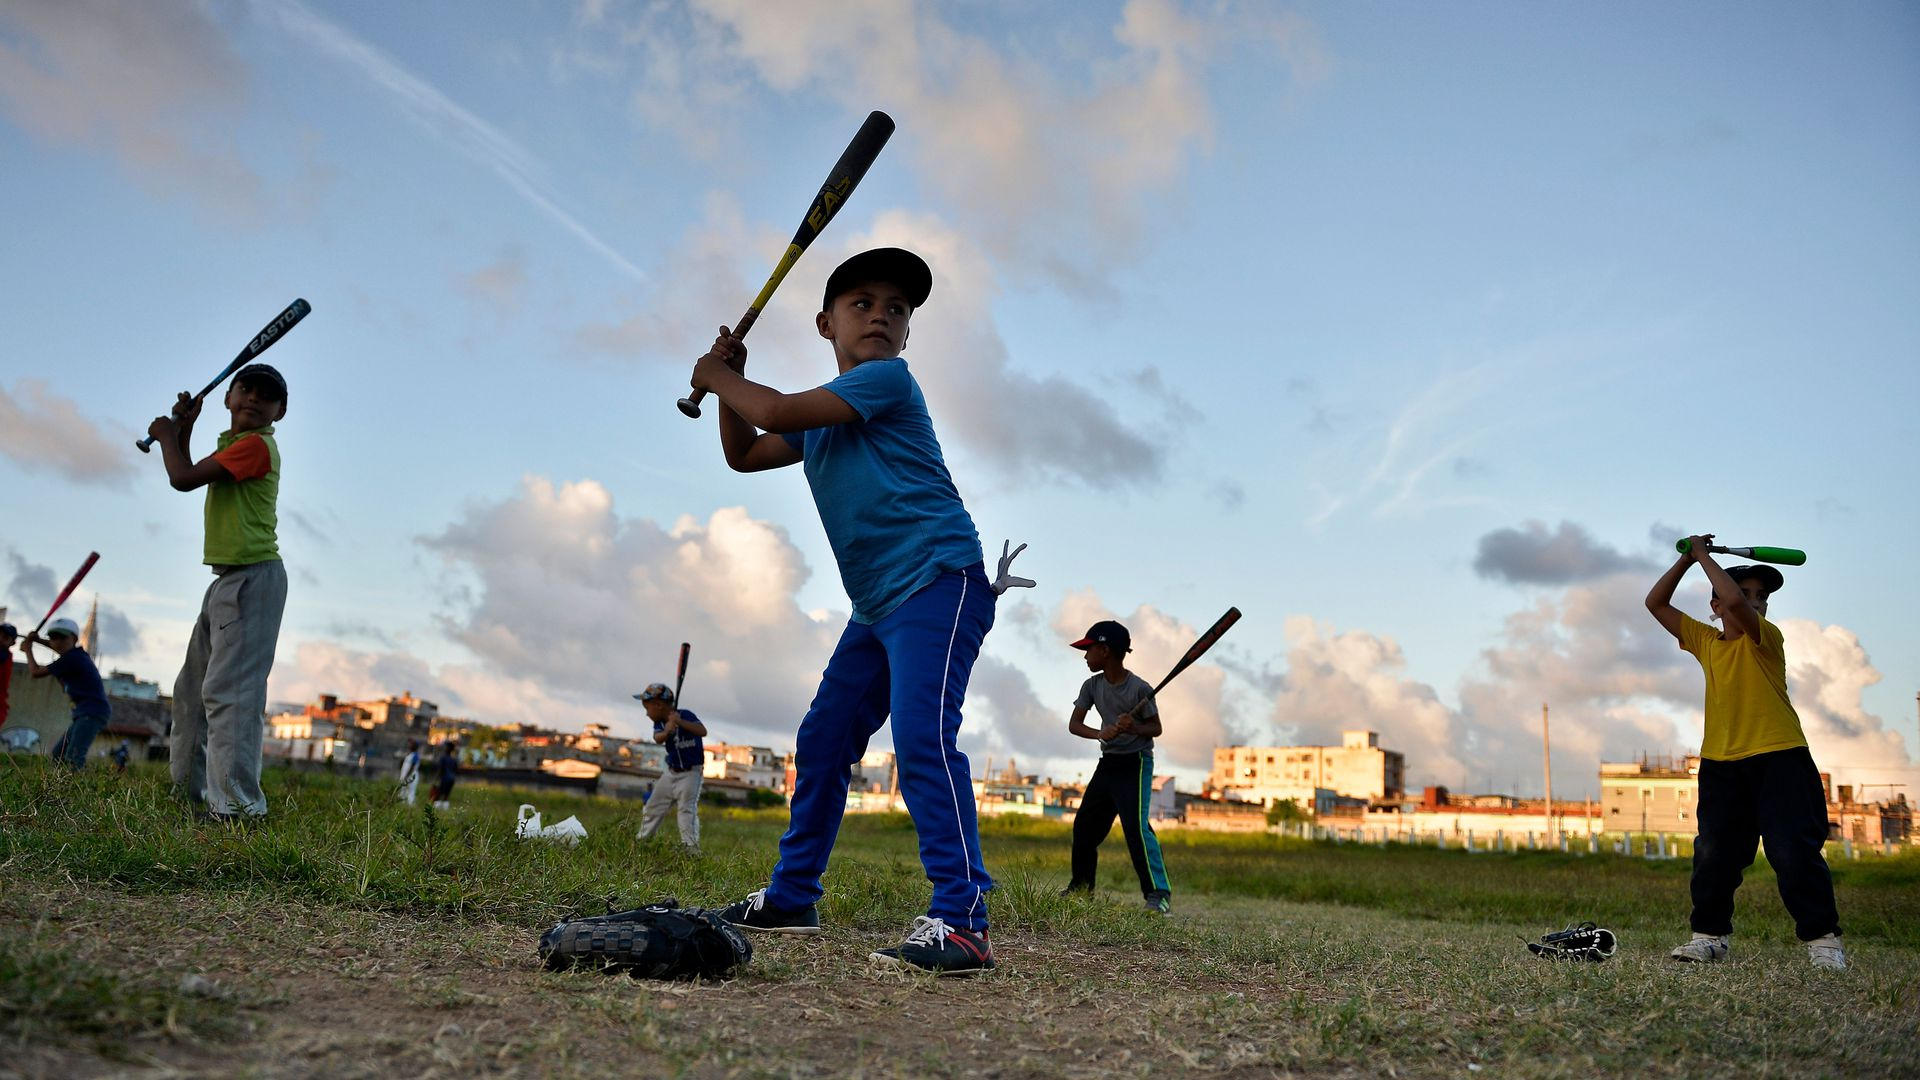 Cuban children practice baseball in a field of Havana, on September 17, 2018